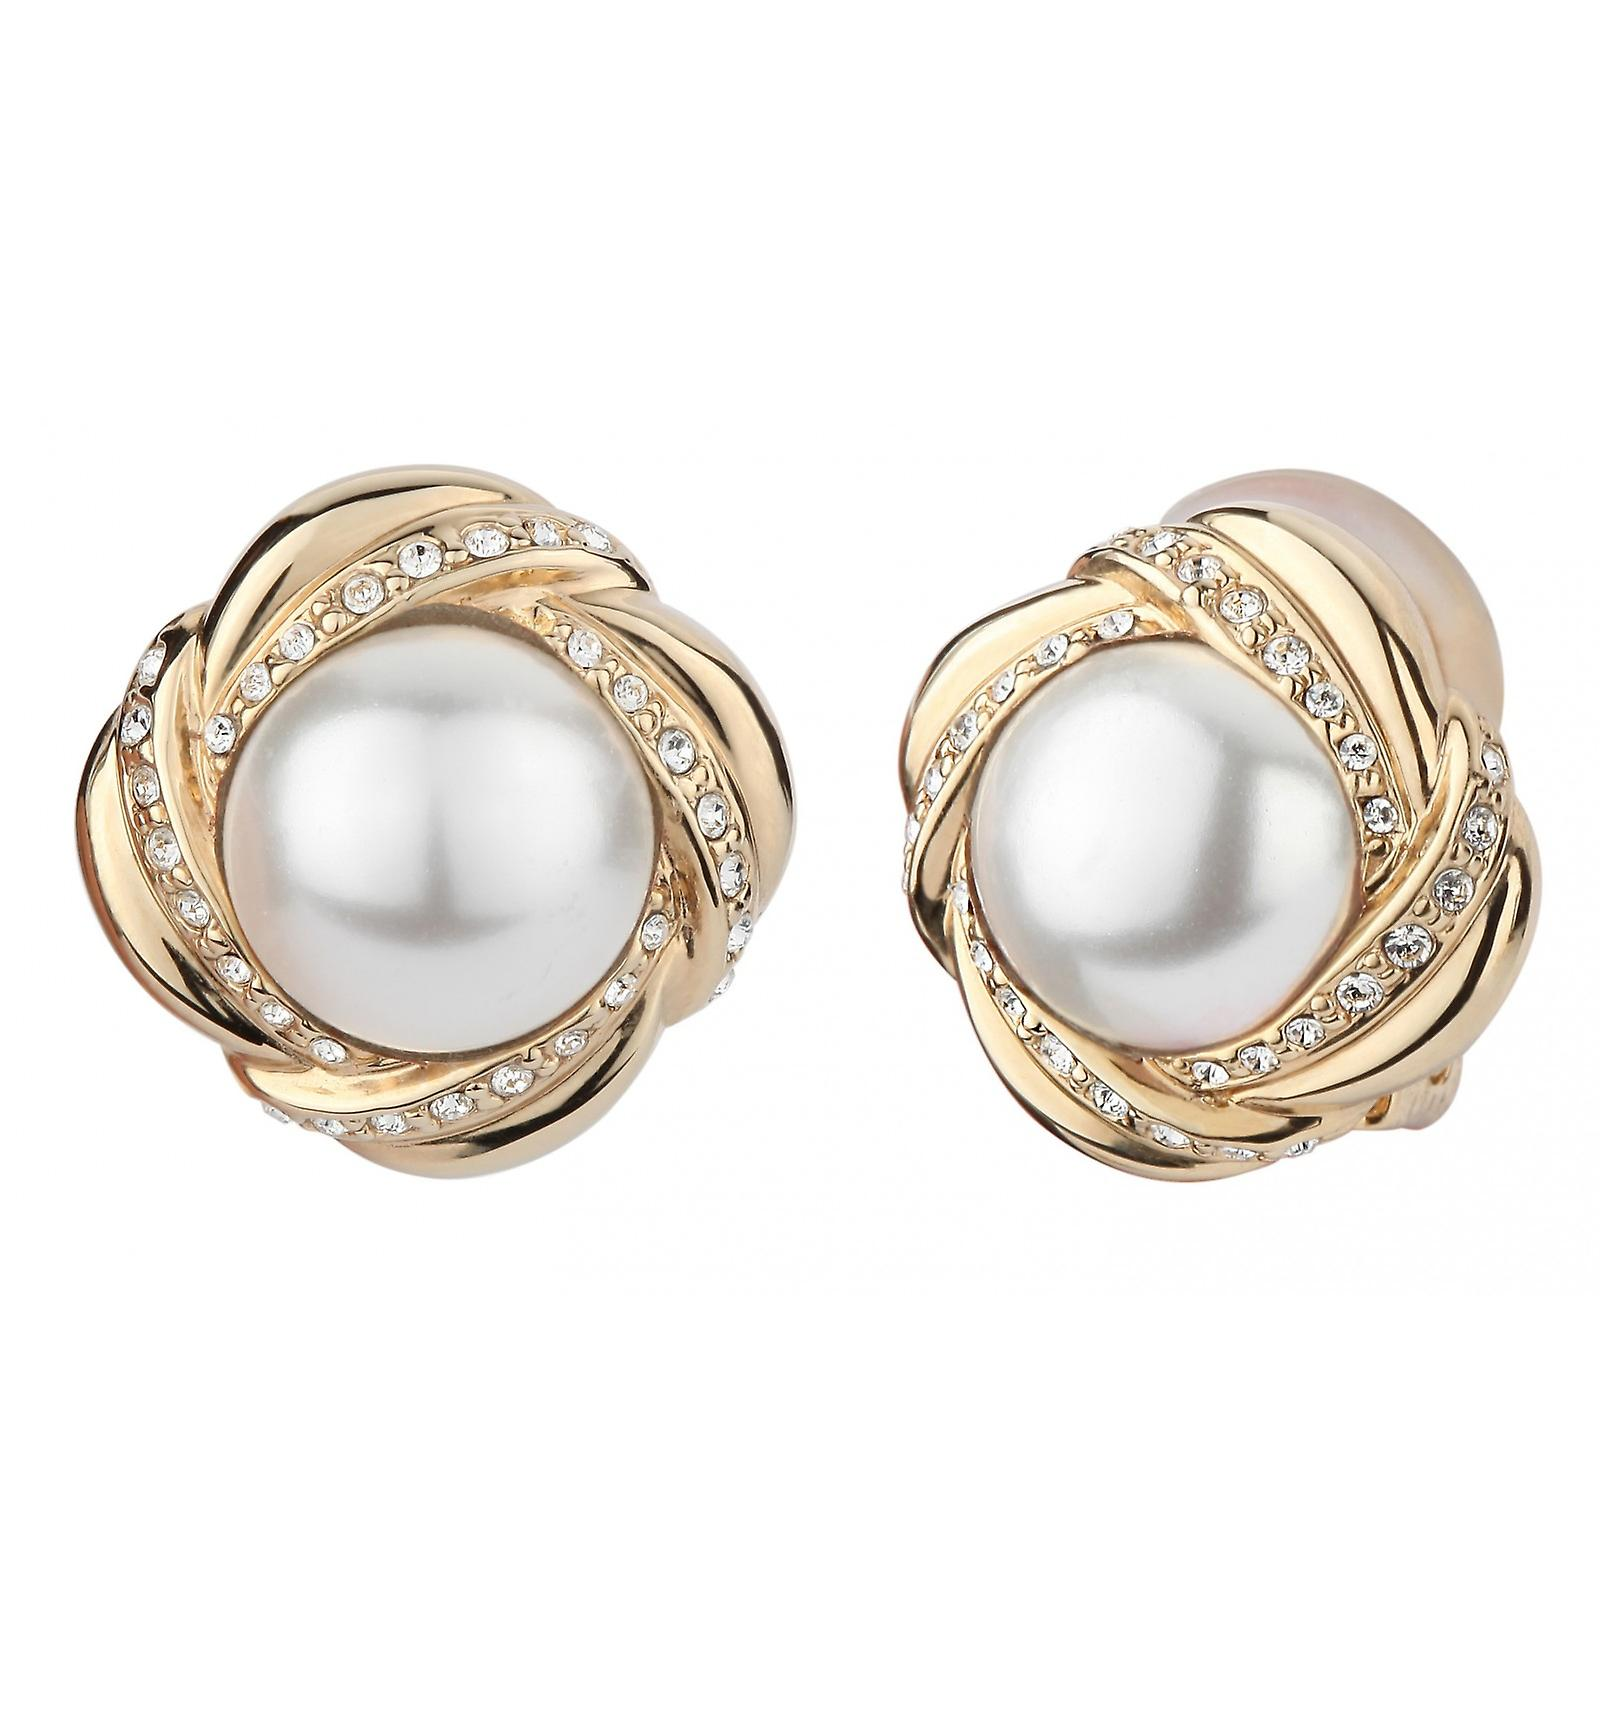 Traveller clip earring - 10mm white pearl - 22ct gold plated - 114181